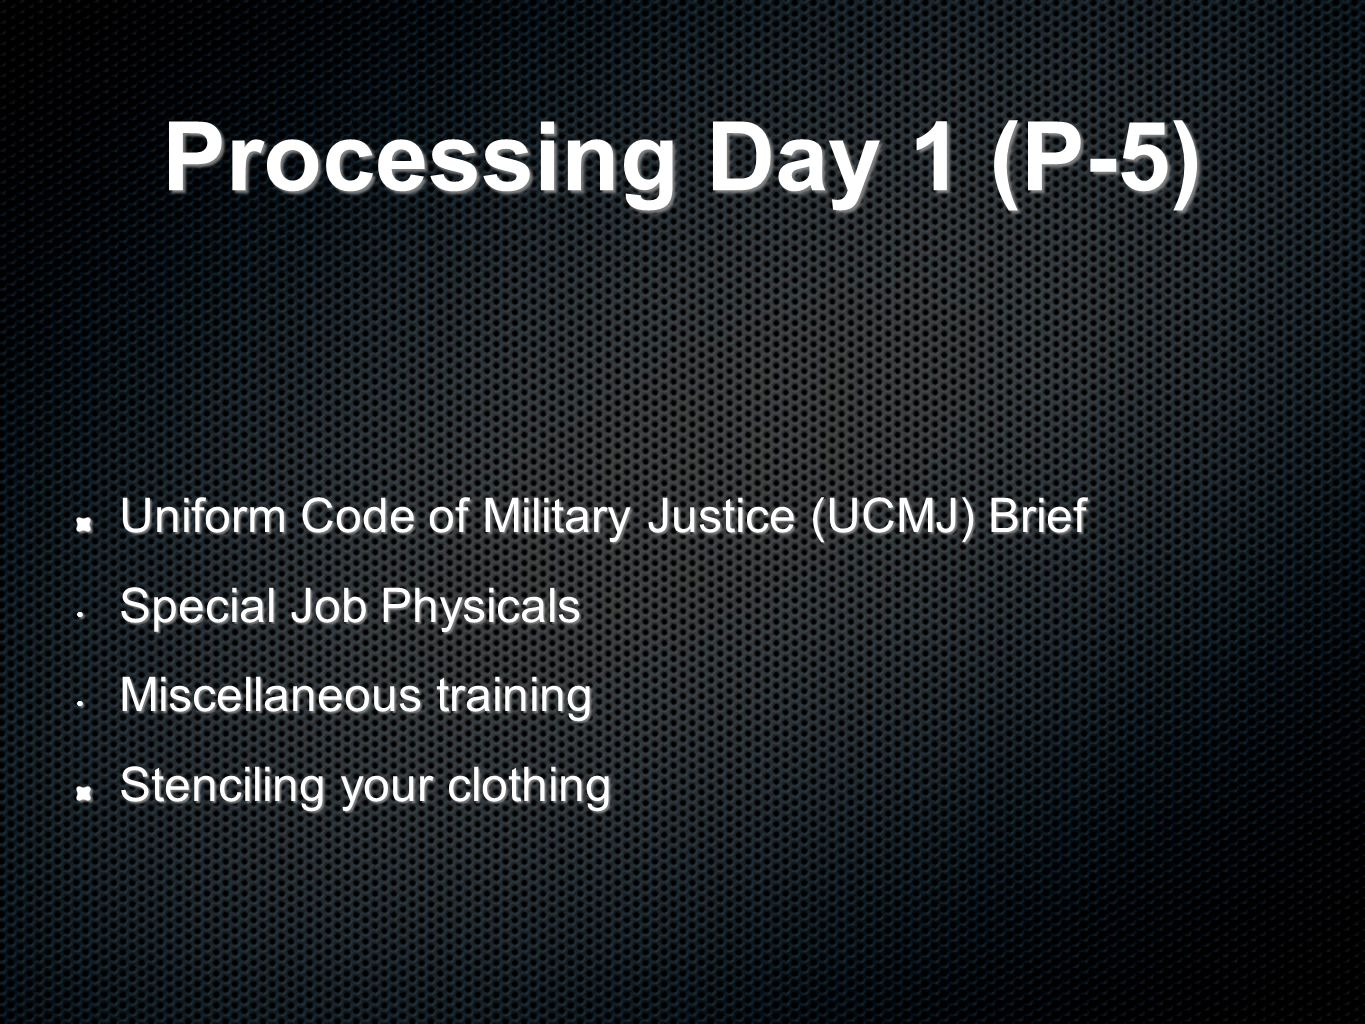 Processing Day 1 (P-5) Uniform Code of Military Justice (UCMJ) Brief